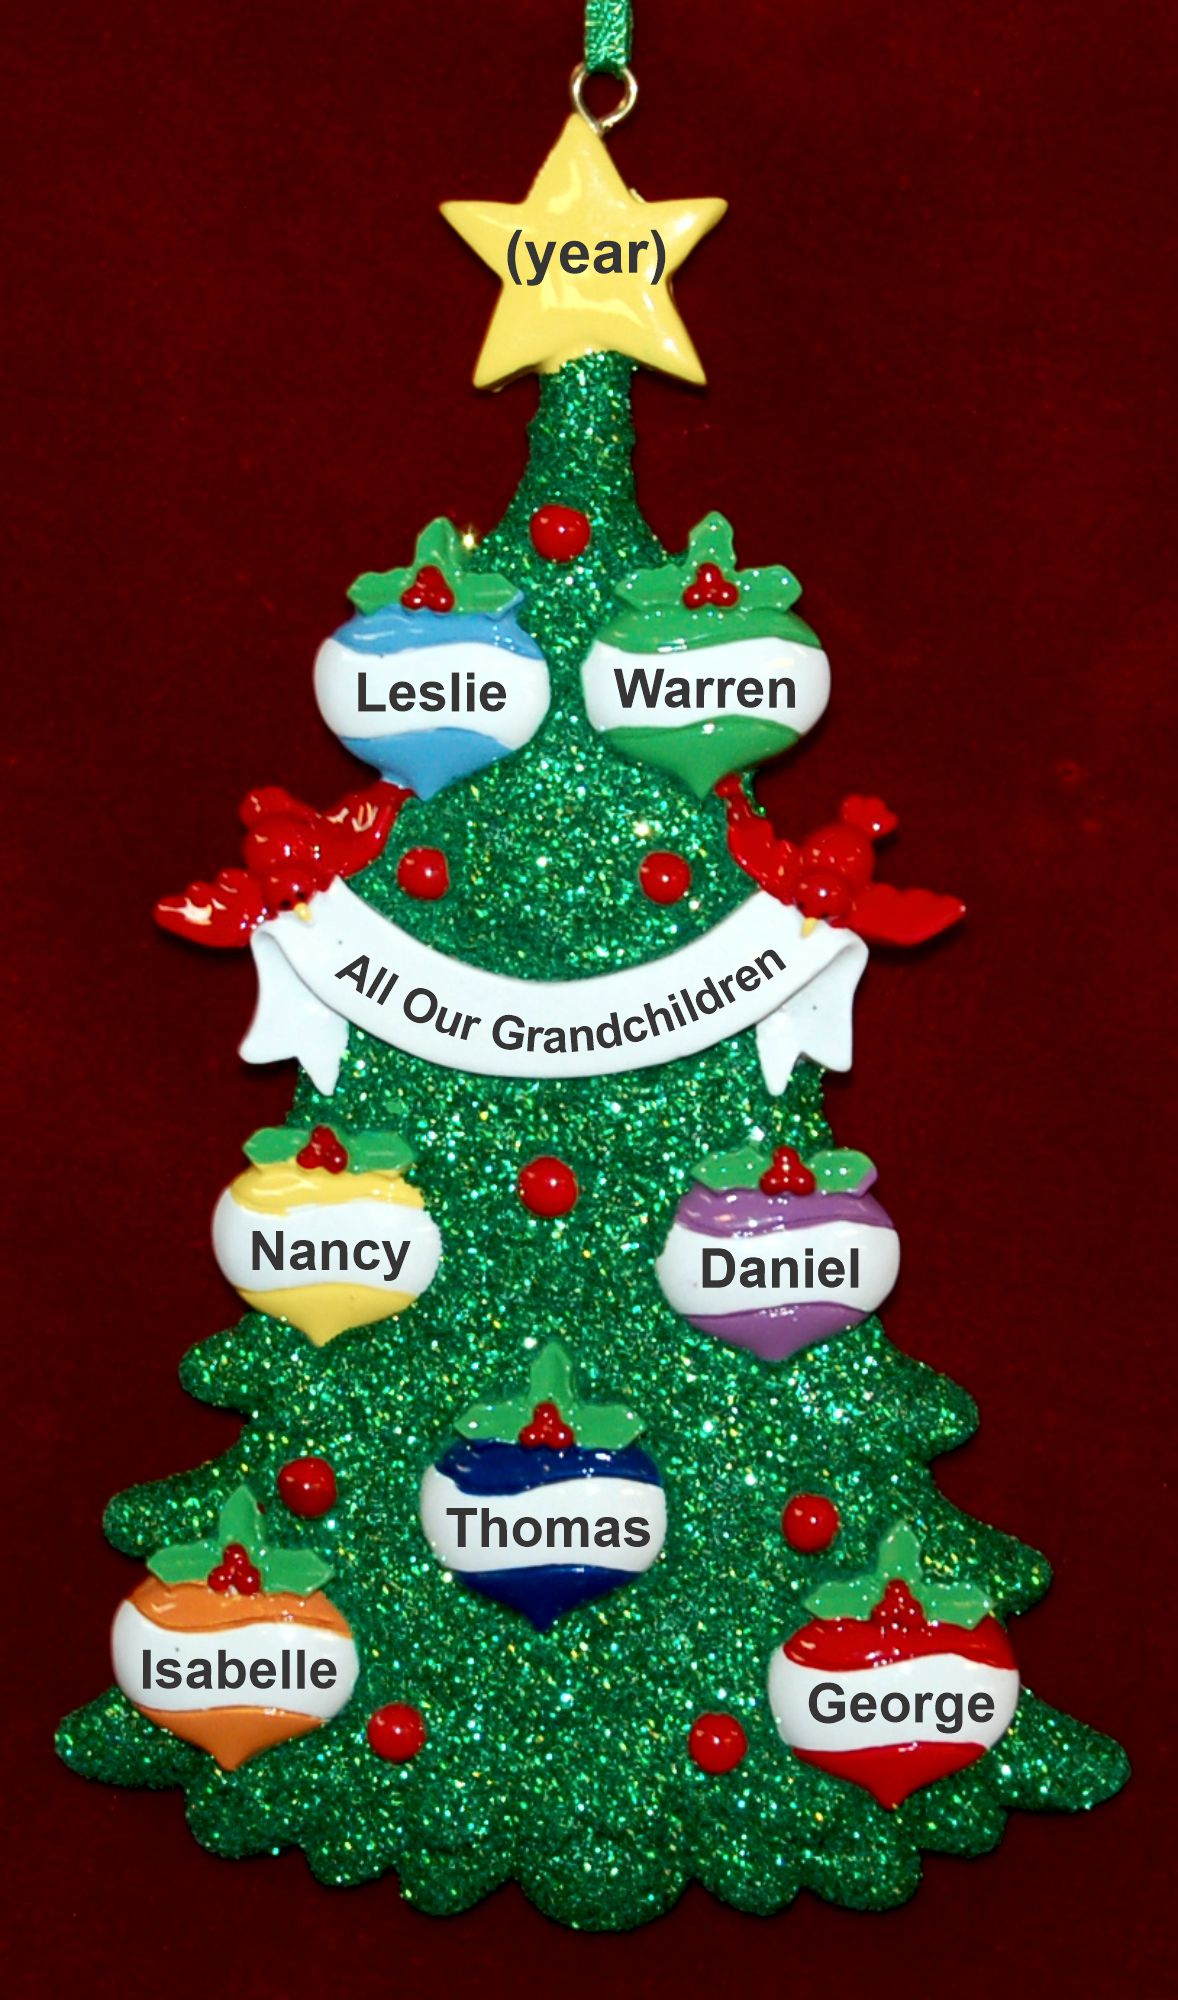 Personalized Grandkids Christmas ornament Xmas Tree for 7 Personalized FREE by Russell Rhodes